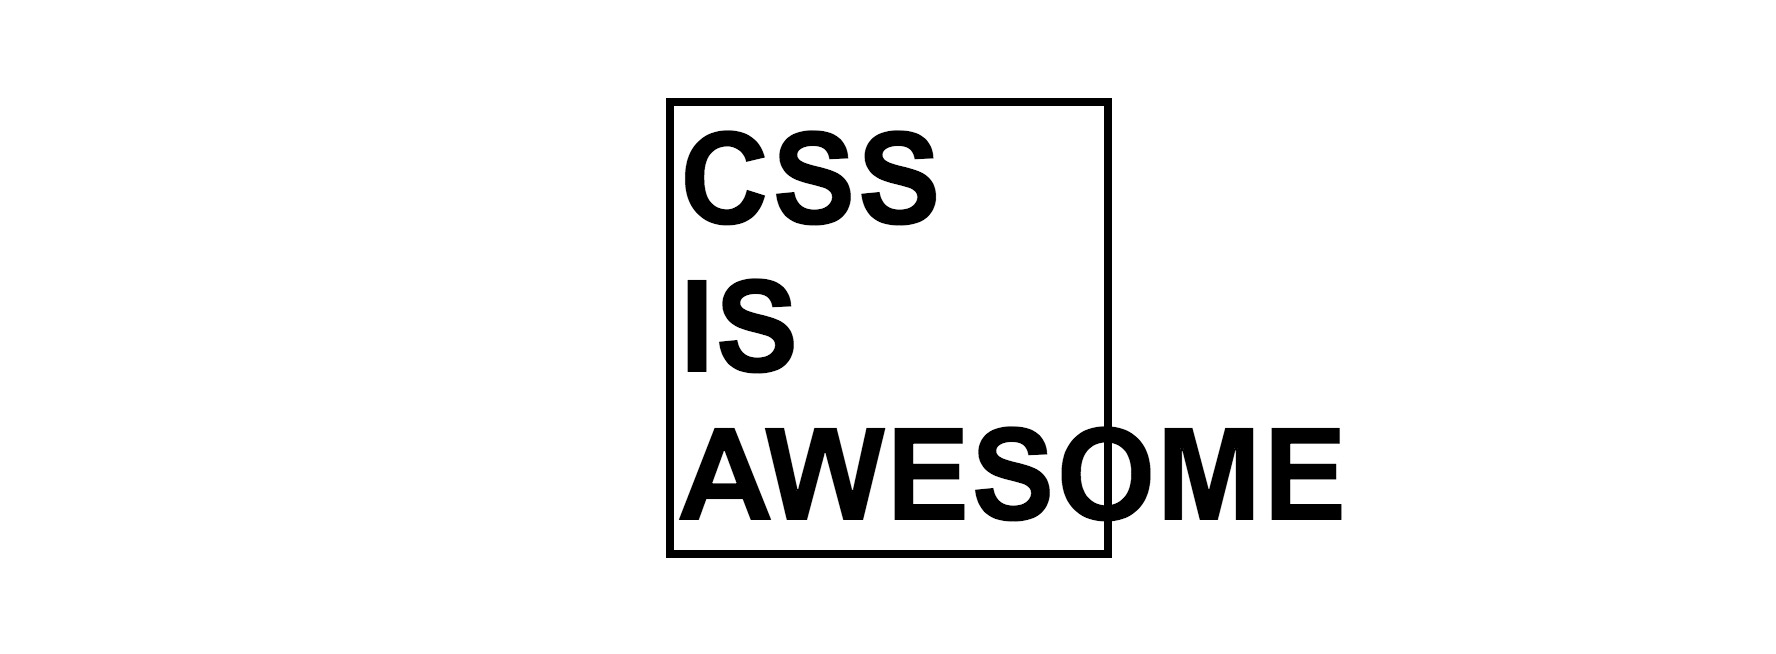 CSS is Awesome (overflow meme)